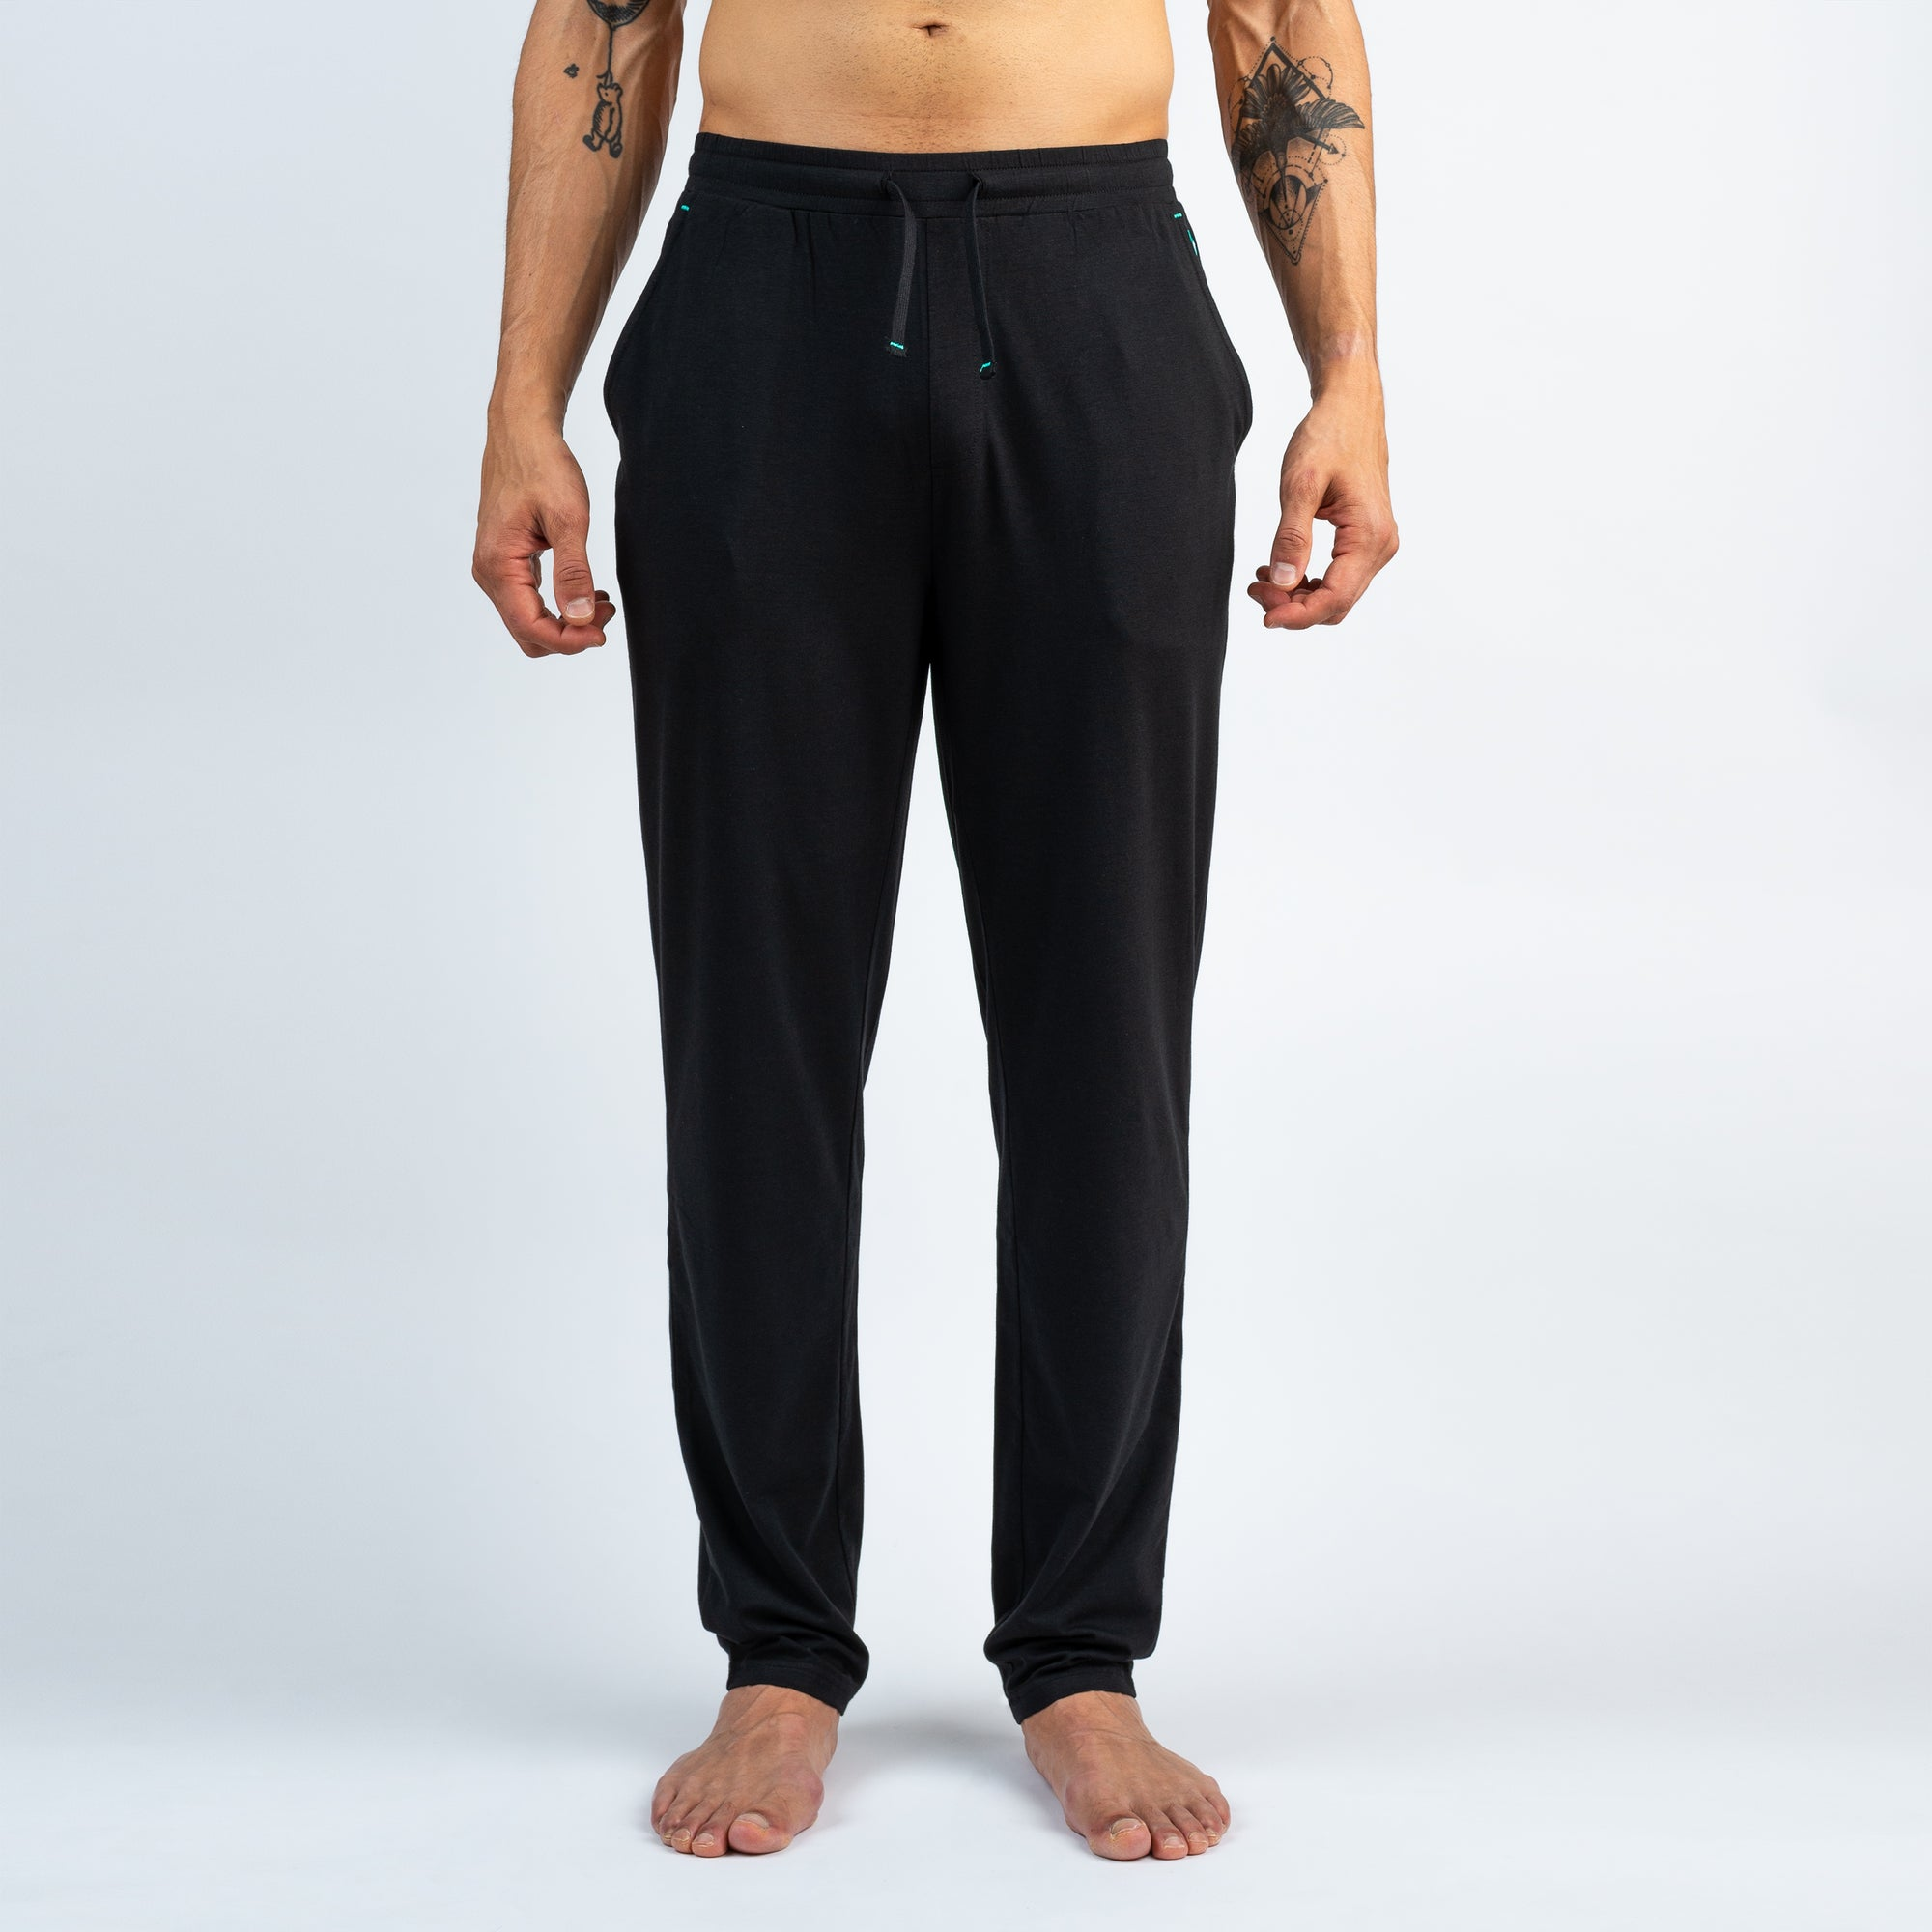 Pants Sleepwear - Black